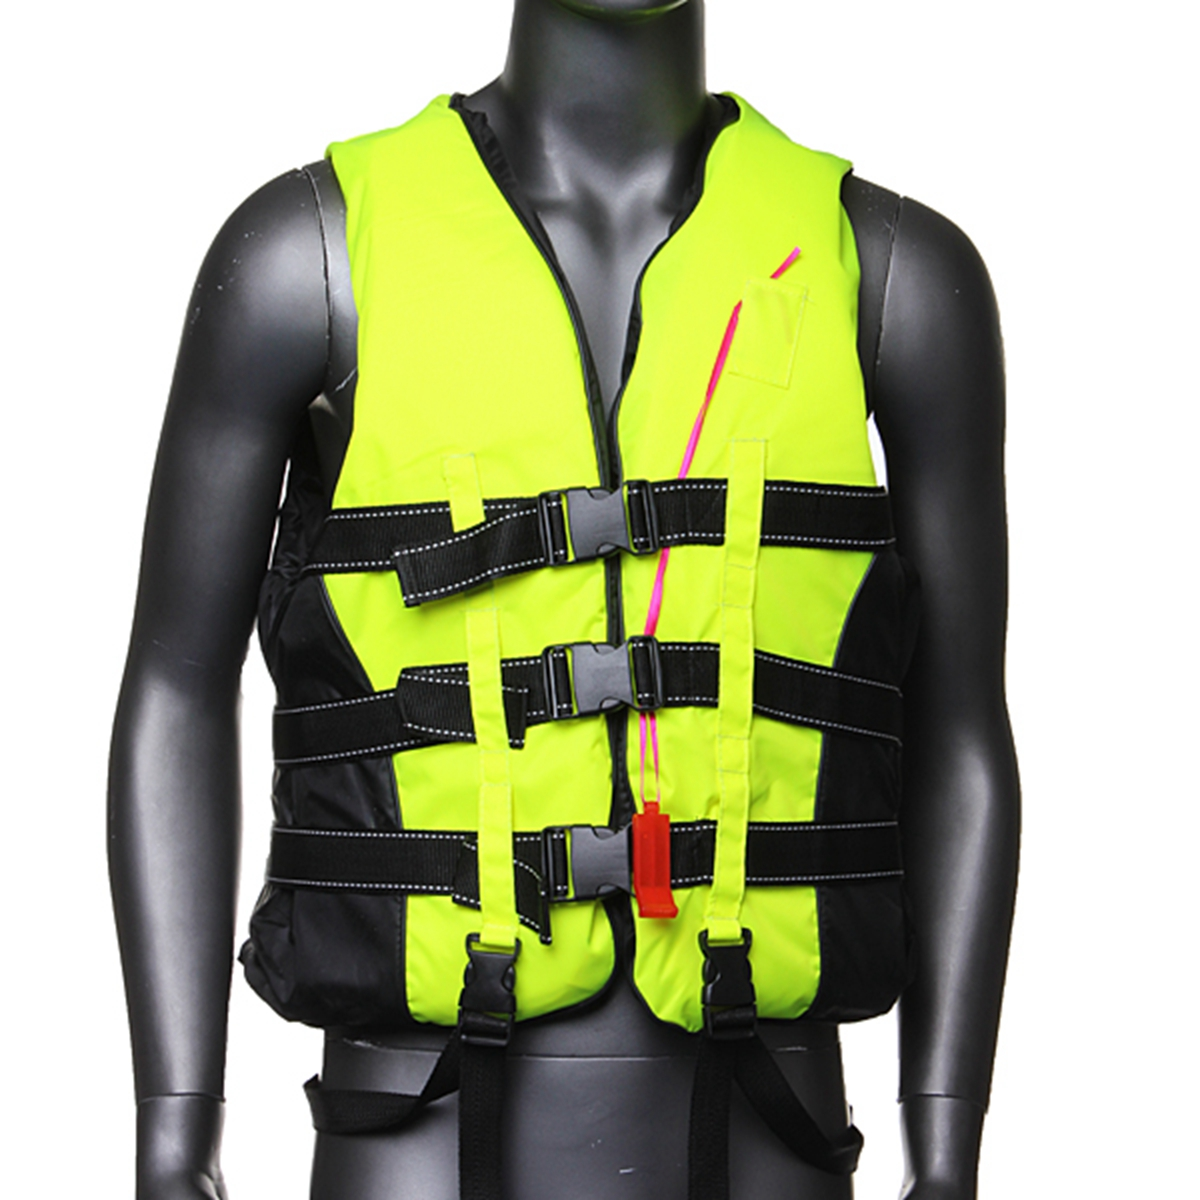 CAMTOA Traditional Life Vest Life Jacket Vest-PFD Fully Enclose Polyester Foam With Whistle For Adult Jet Skiing Boating... by